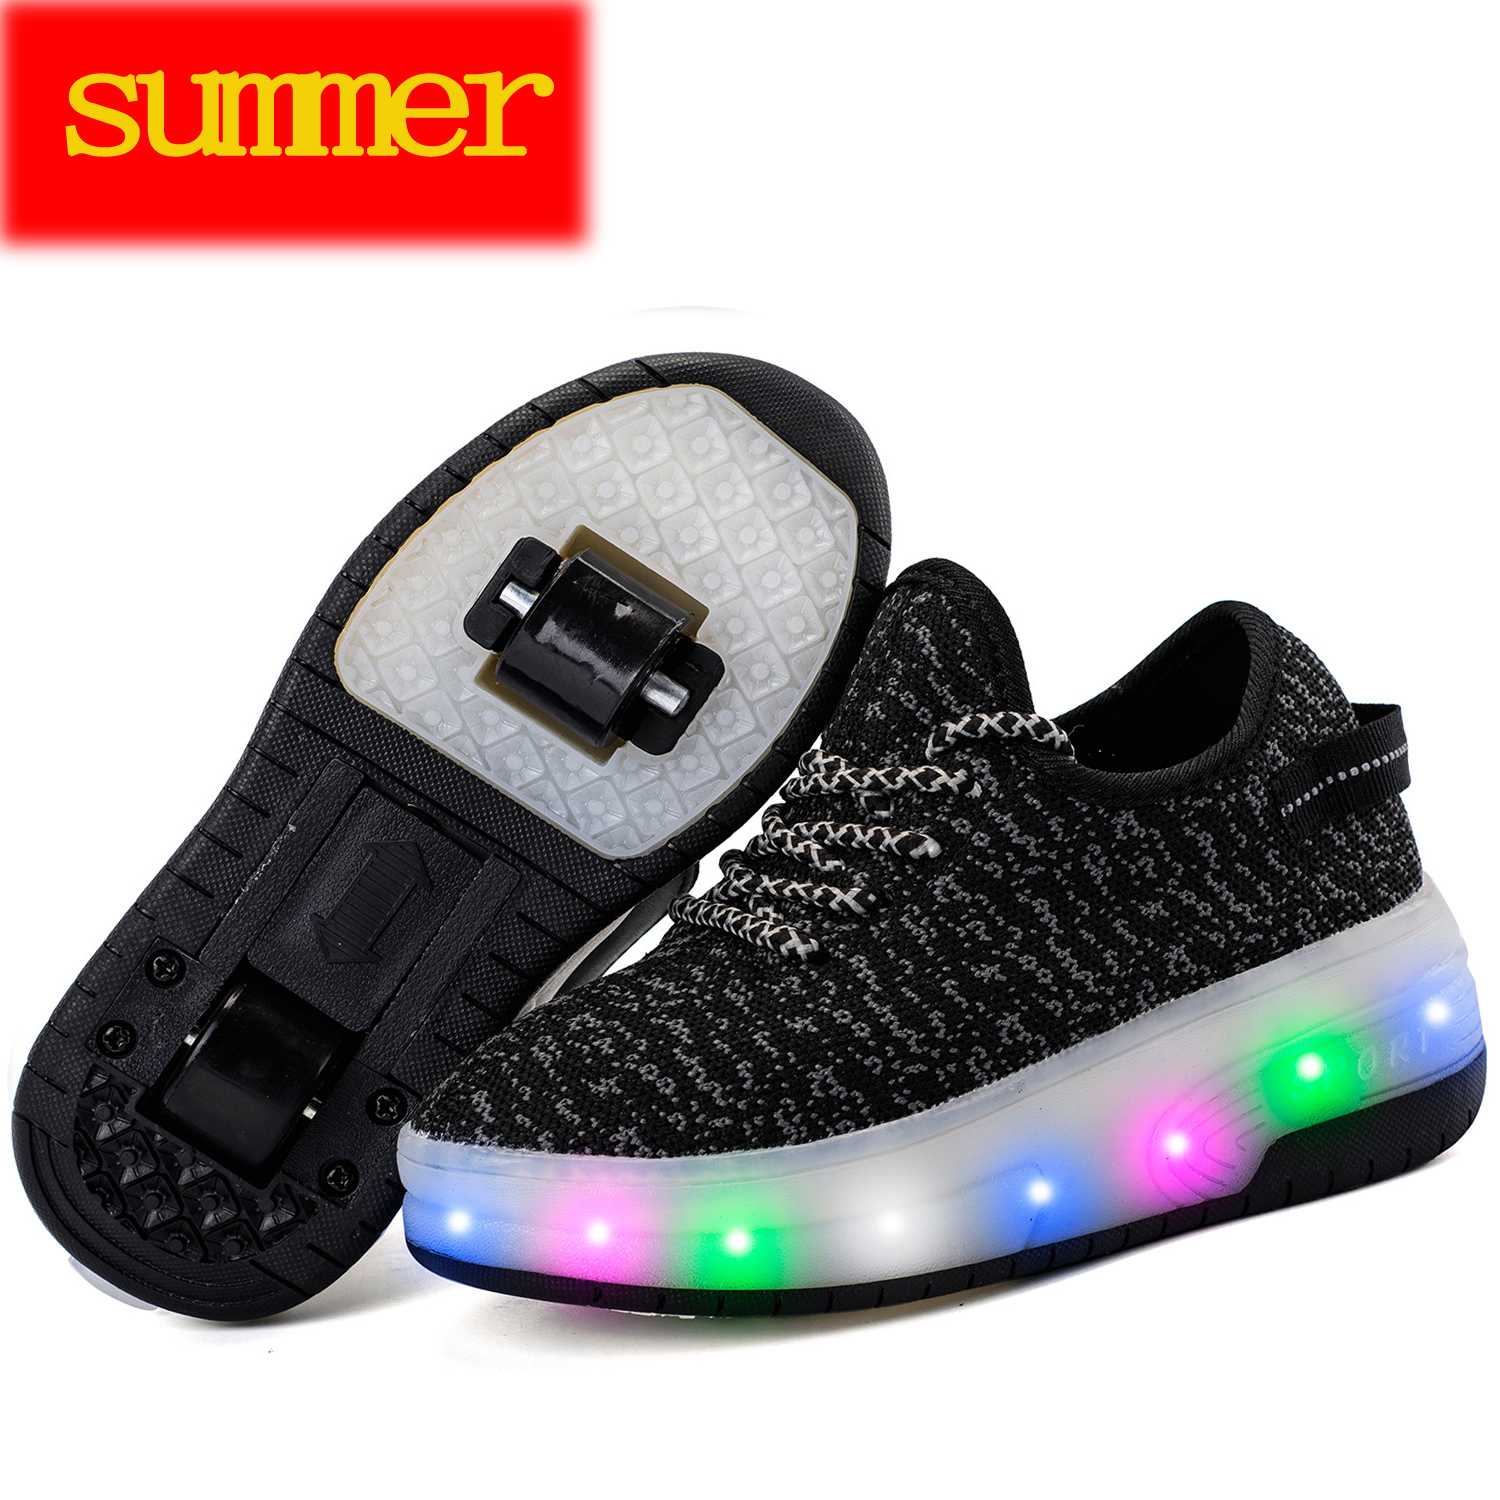 Heelys Summer Children Roller Sneakers Kids light Shoes with Wheel Flame Buty Led Luminous Boys Girls Kids led Glowing SneakersHeelys Summer Children Roller Sneakers Kids light Shoes with Wheel Flame Buty Led Luminous Boys Girls Kids led Glowing Sneakers